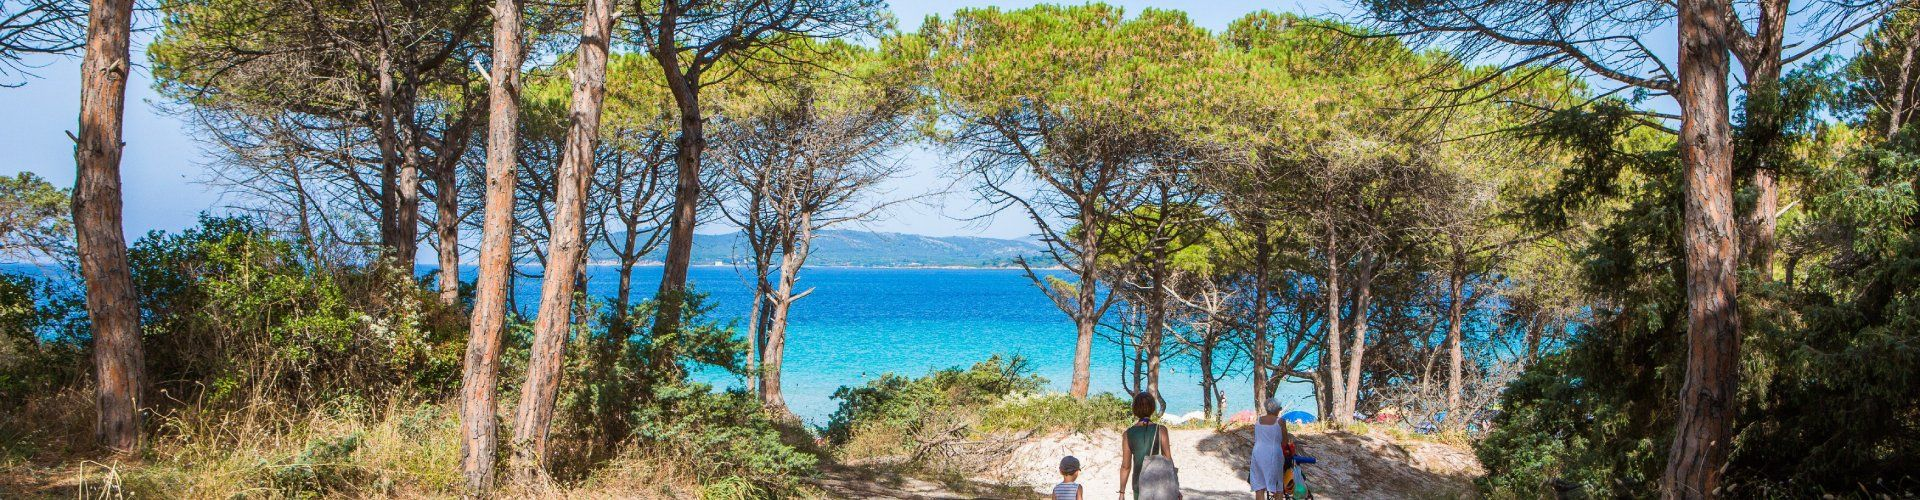 Access to the beach of Pia Maria through pine trees and sand dunes